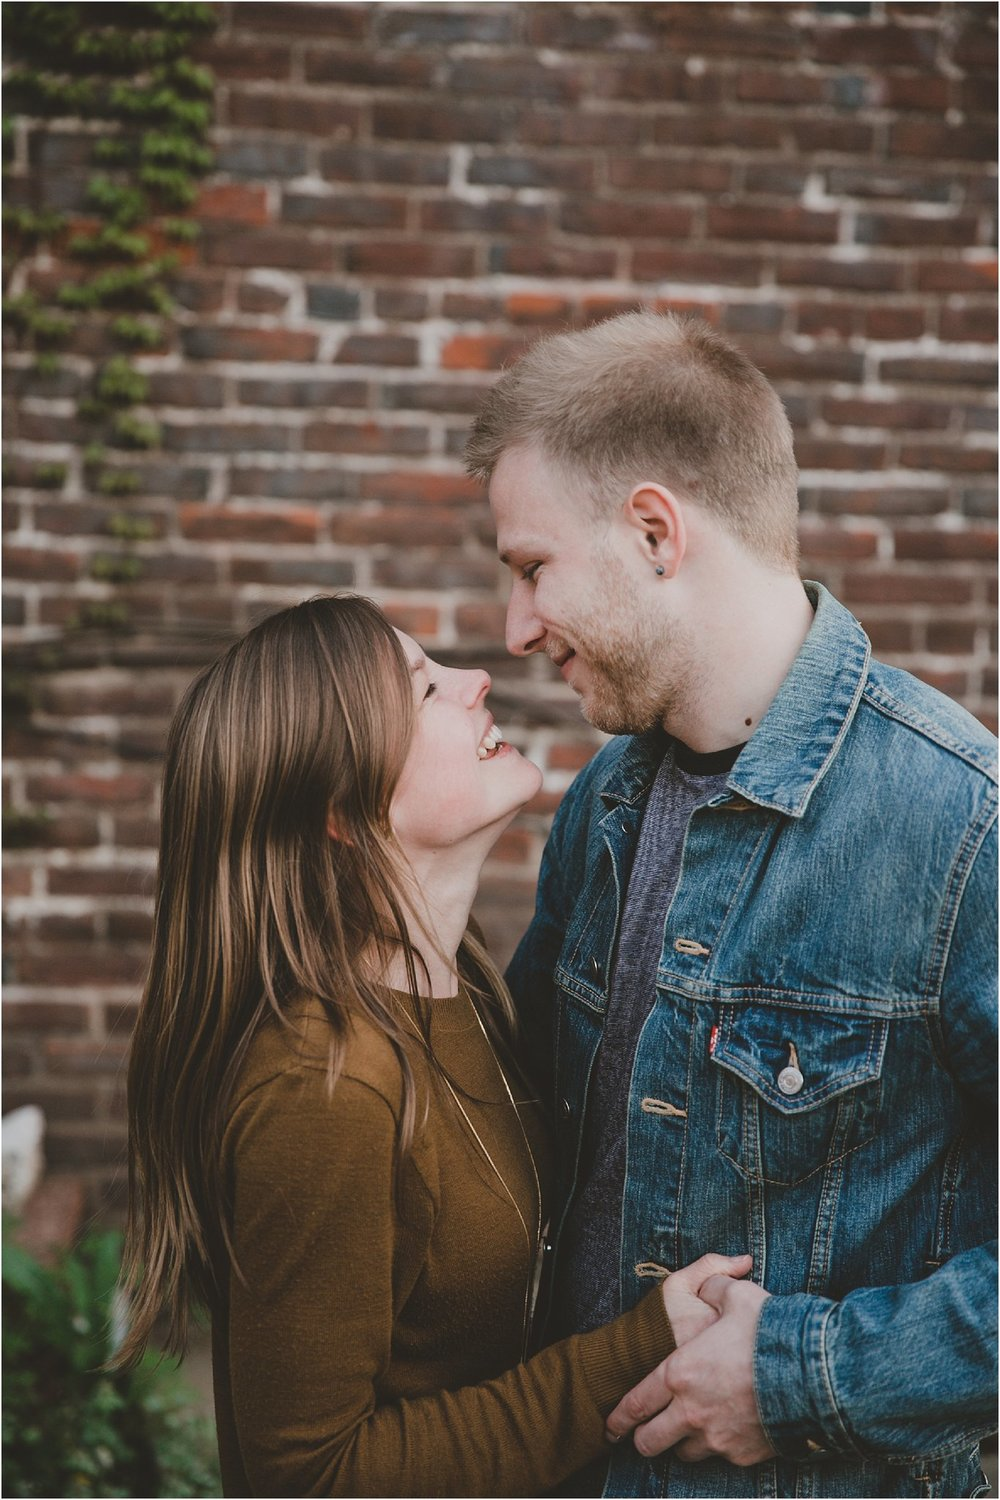 PattengalePhotography_Andrew&Allison_Soulard_SaintLouis_Engagement_Urban_Hipster_Boho_Wedding_Photographer_Missouri_Couple_PattengalePhotography__0039.jpg